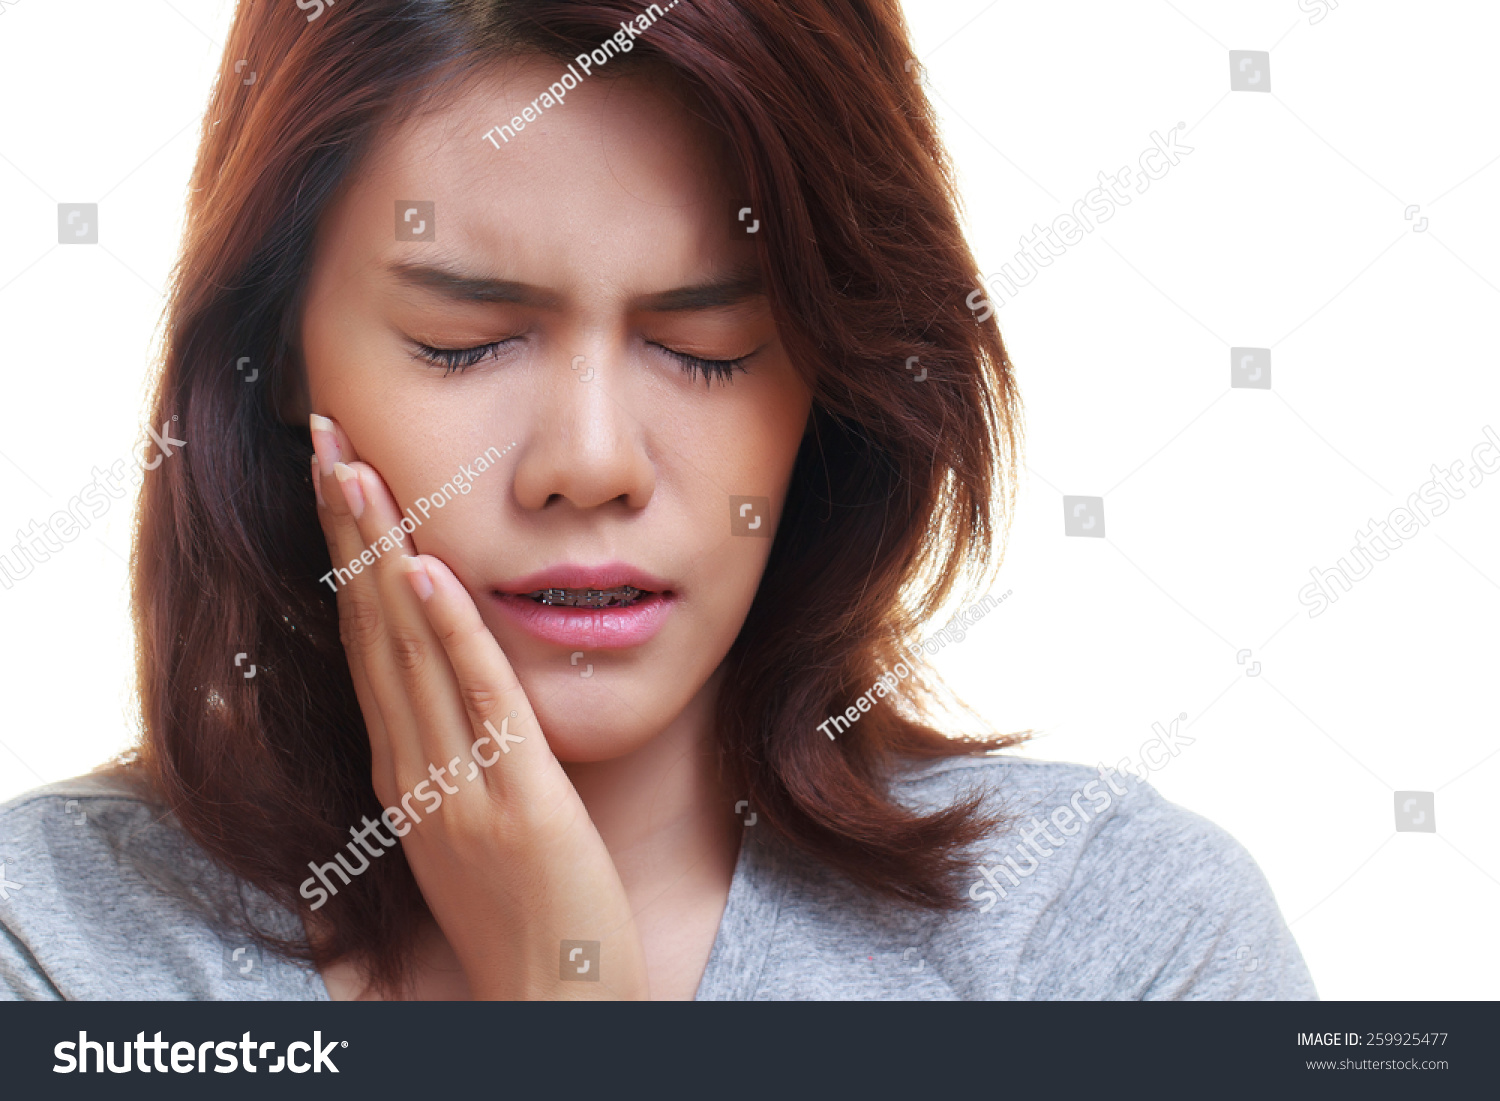 Teen Woman Pressing Her Bruised Cheek With A Painful Expression As If Shes Having A Terrible